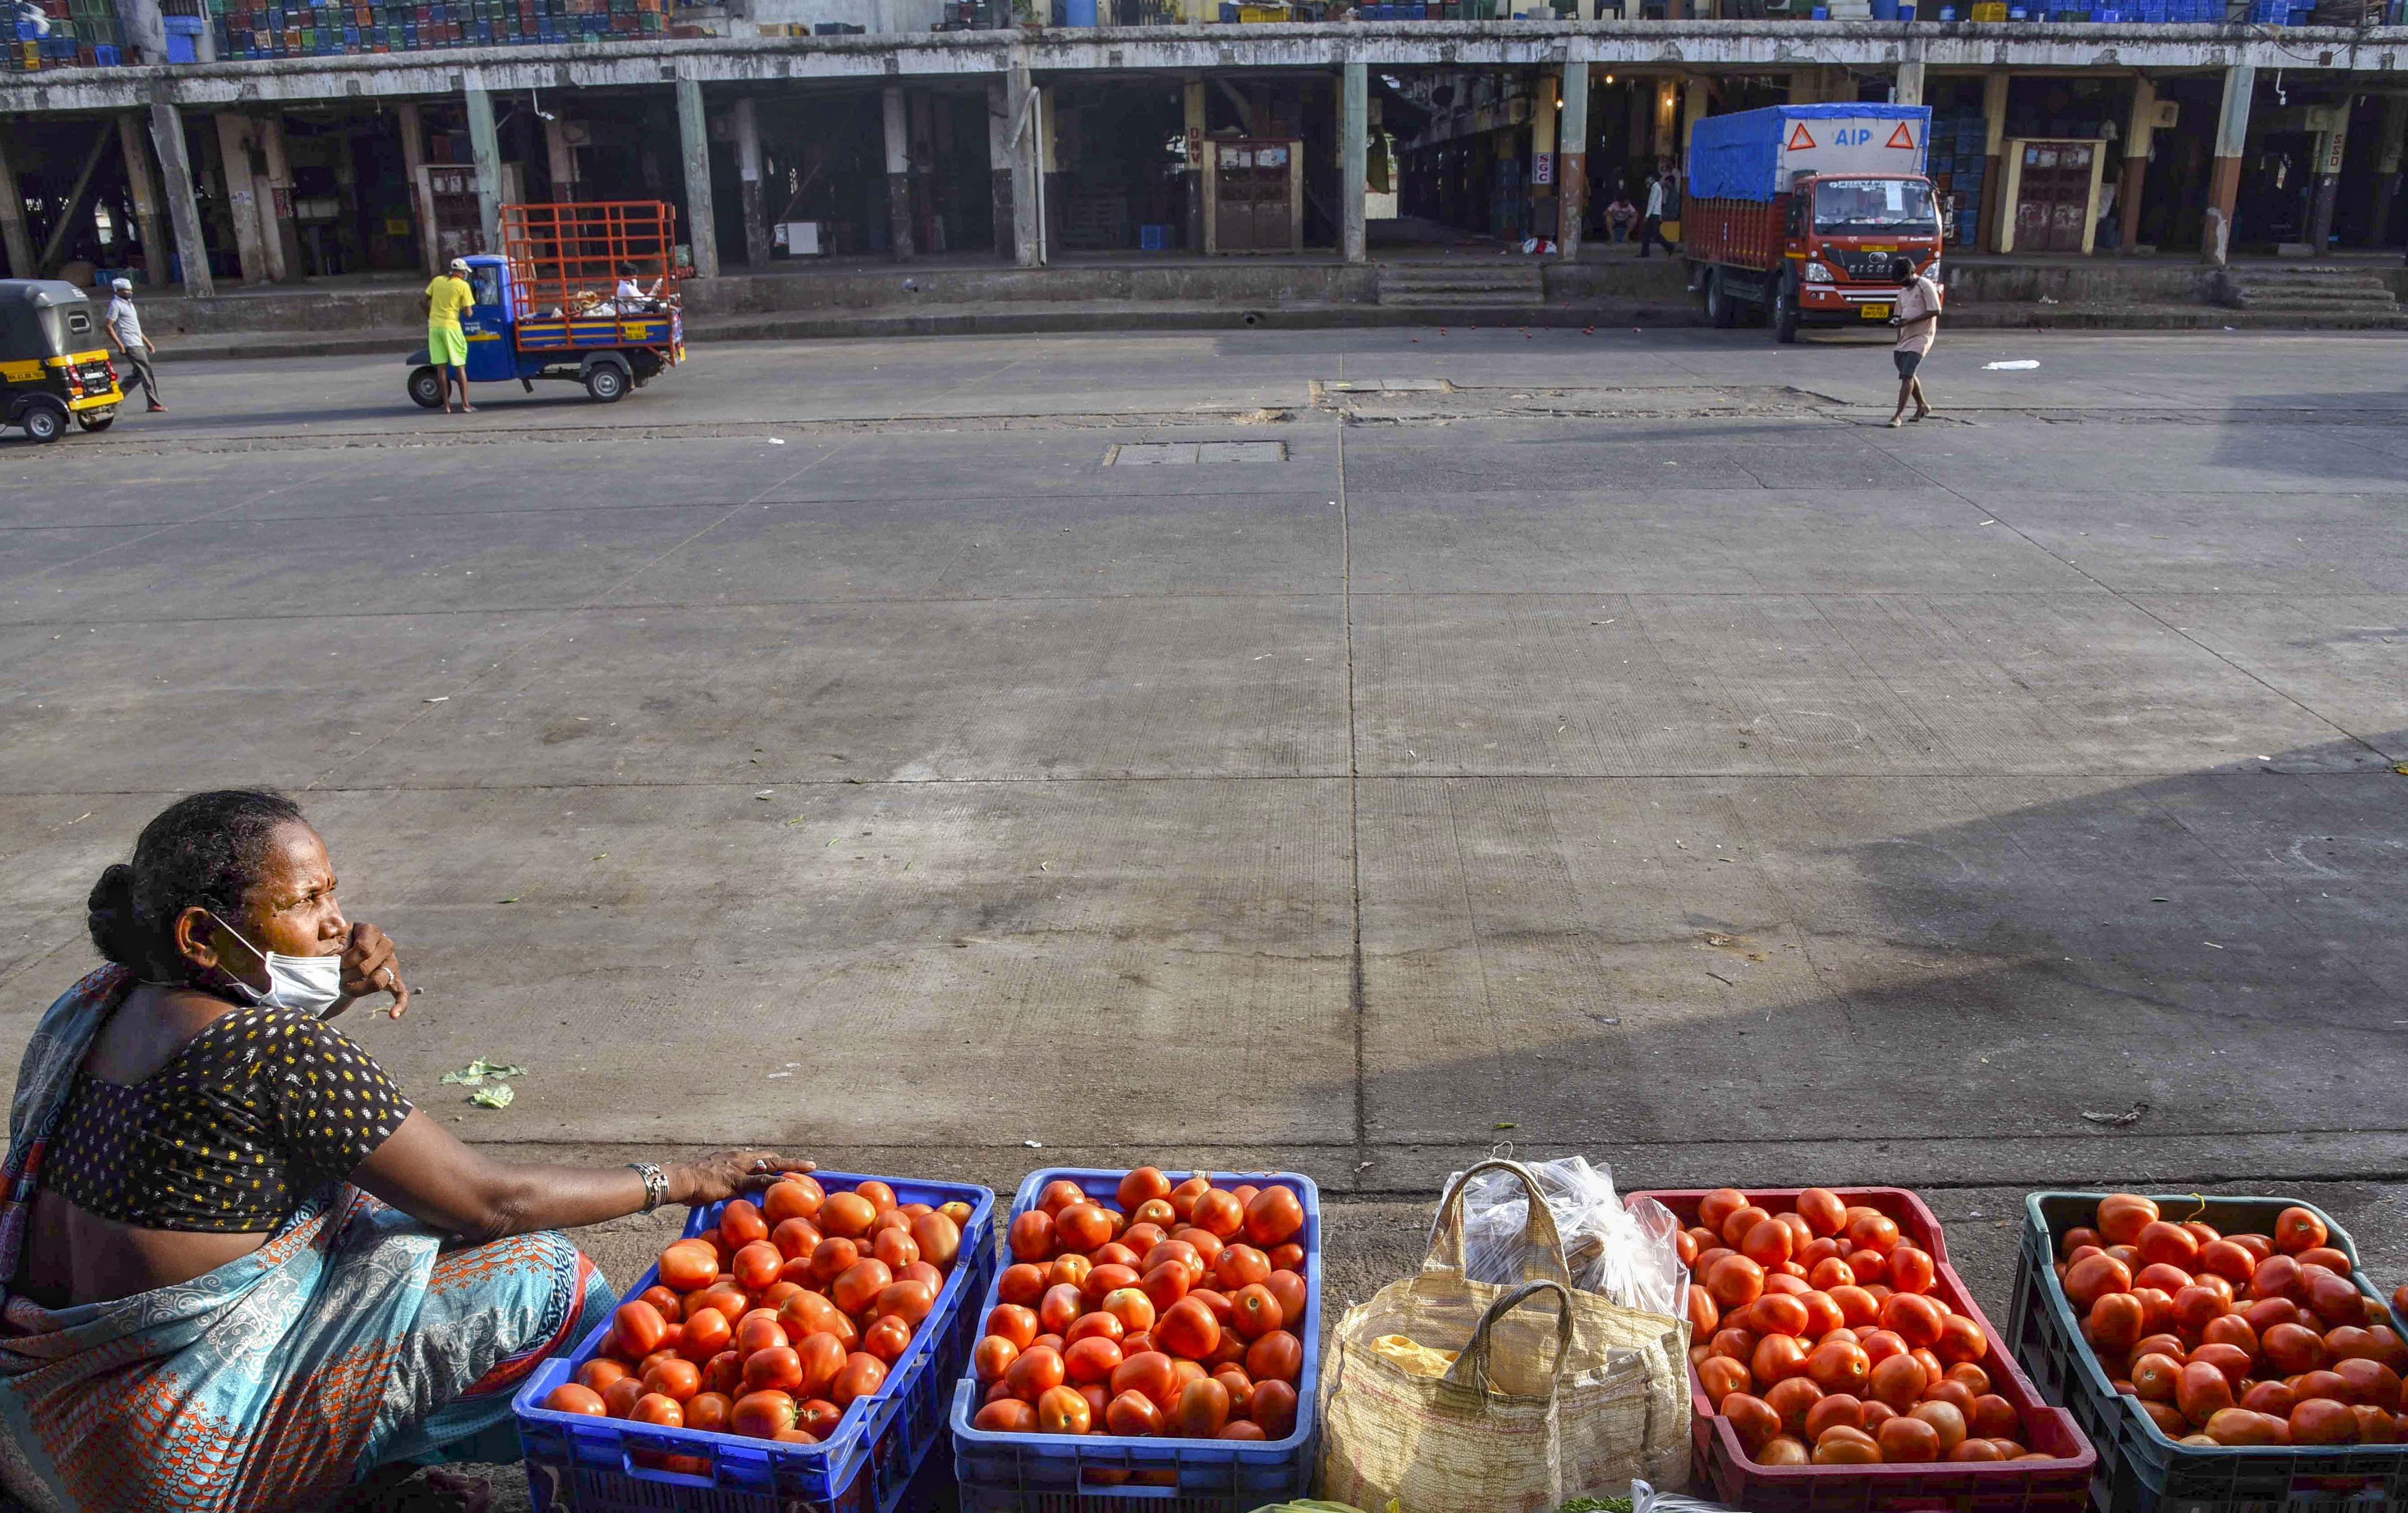 A vendor selling tomatoes waits for customers at APMC market after it opened with added precautionary measures against Covid-19, during the ongoing nationwide lockdown to curb the spread of coronavirus, in Navi Mumbai, Monday, May 18, 2020.